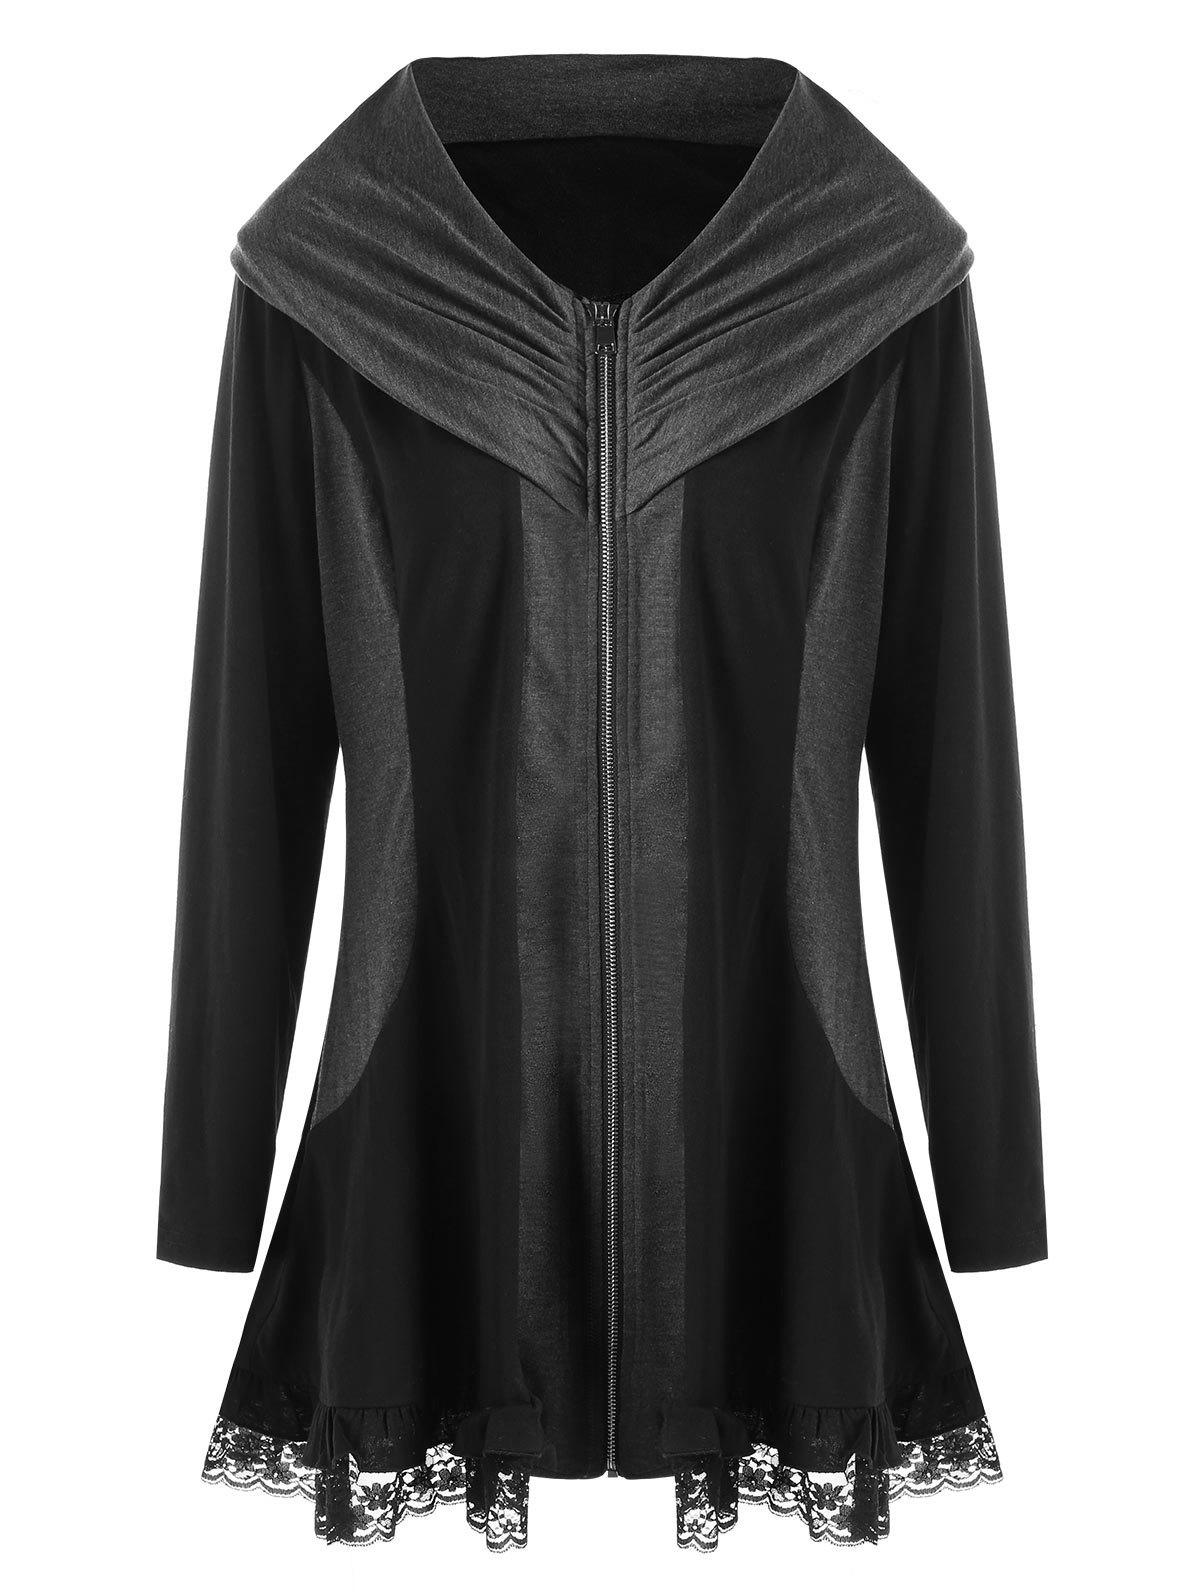 Plus Size Lace Edge Zip Up CoatWOMEN<br><br>Size: 3XL; Color: BLACK; Clothes Type: Others; Material: Polyester,Spandex; Type: Slim; Shirt Length: Long; Sleeve Length: Full; Collar: V-Neck; Pattern Type: Solid; Style: Casual; Season: Fall,Spring; Weight: 0.4500kg; Package Contents: 1 x Coat;